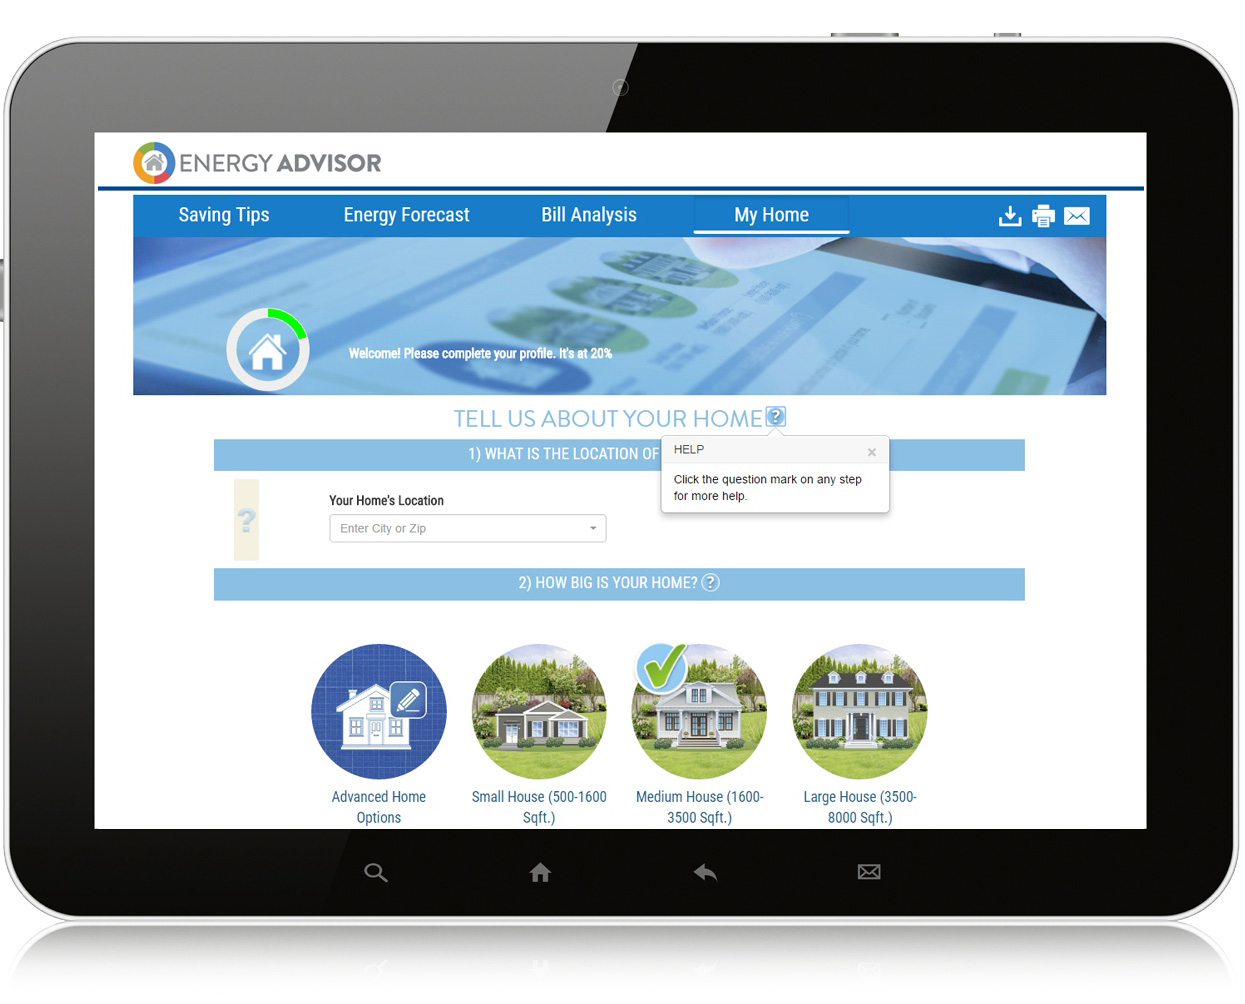 Tablet showing online energy advisor